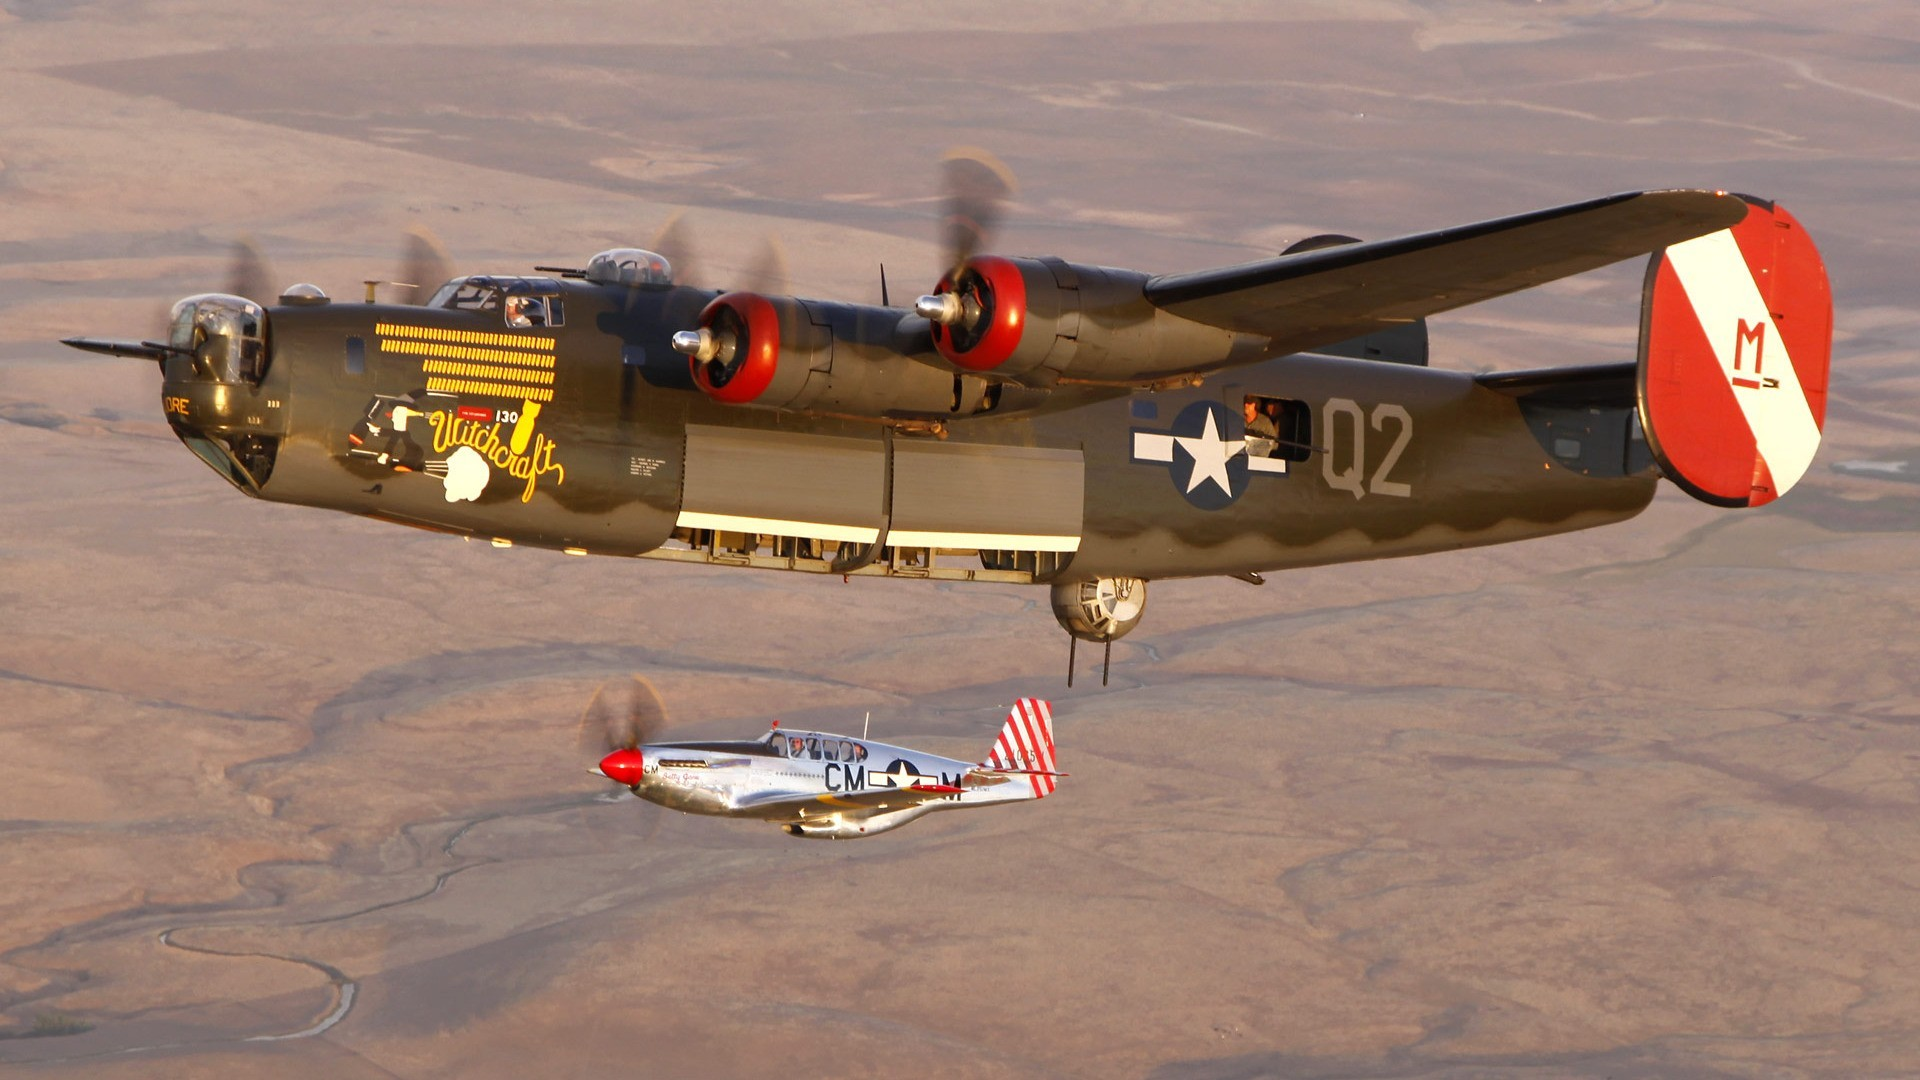 1920x1080 - Consolidated B-24 Liberator Wallpapers 27